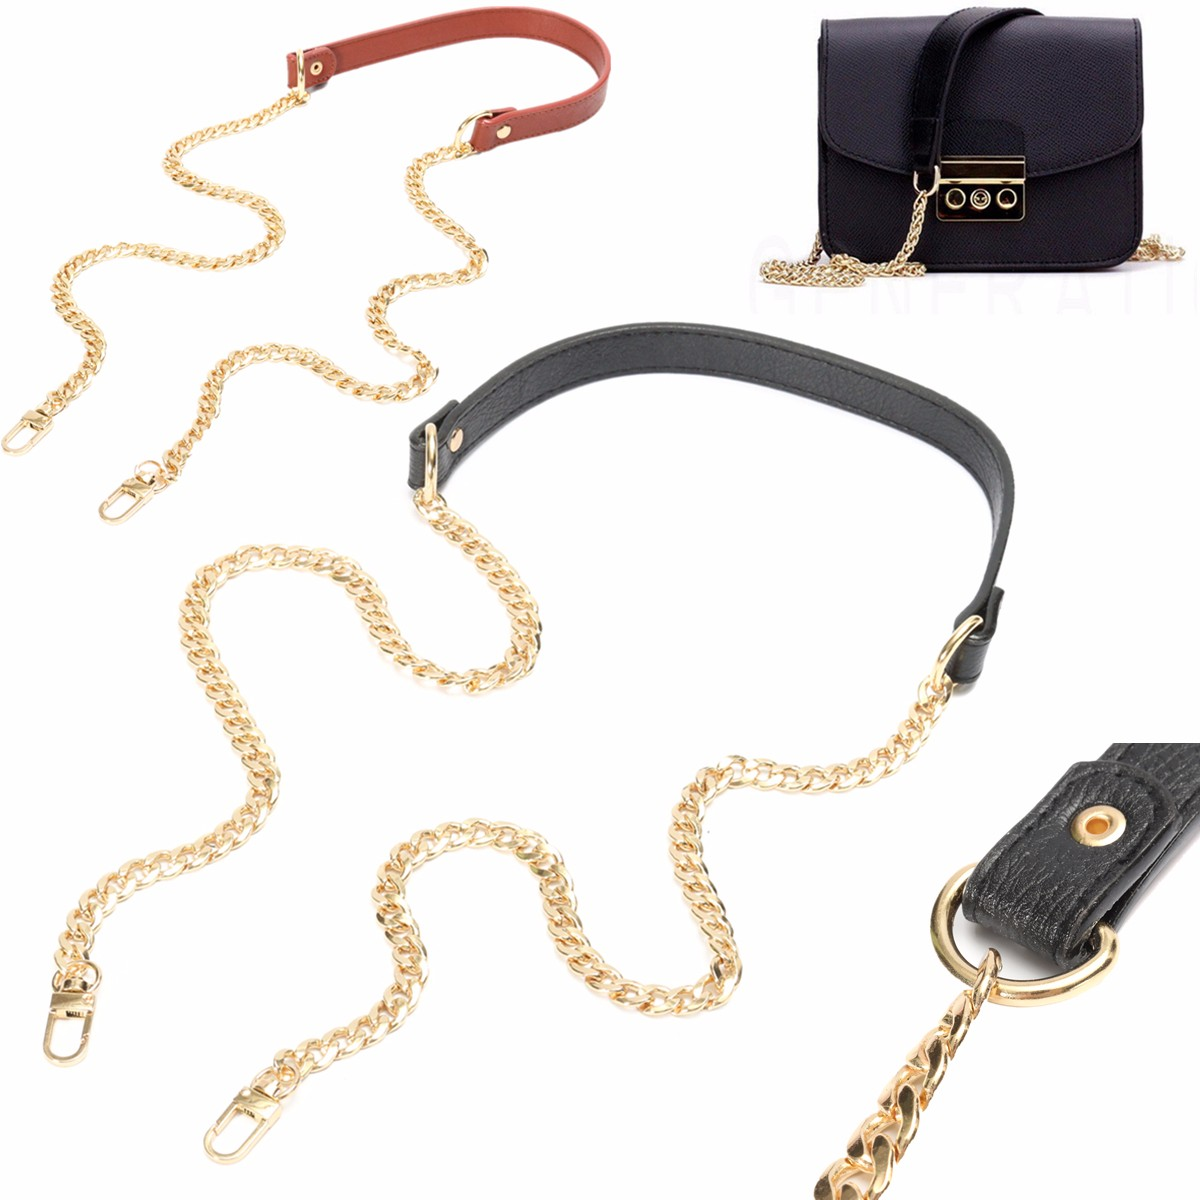 Bag Faux Leather Strap Replacement Metal Chain for Crossbody Shoulder Bag 120cm